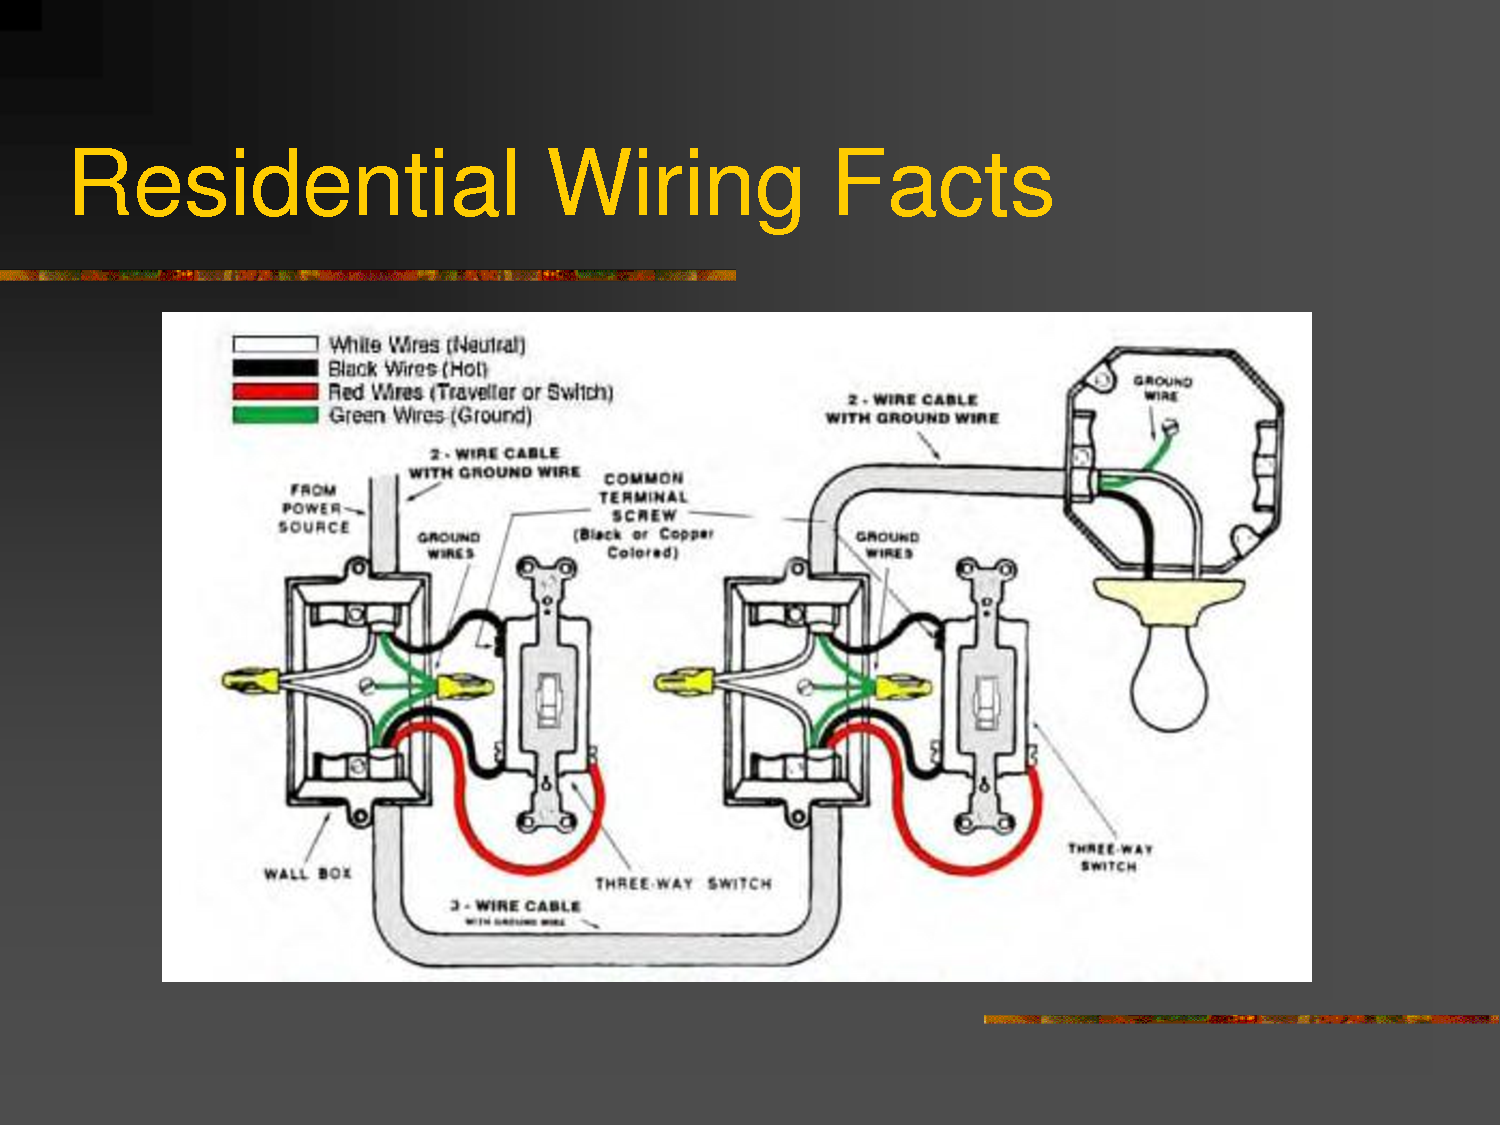 Residential Wiring Diagrams on residential appliances diagrams, residential insulation diagrams, residential cleaning services, landscaping diagrams, wire diagrams, troubleshooting diagrams, residential rental application, residential blueprints, residential roofing diagrams, residential framing diagrams, residential electric systems diagrams, residential sewer systems, residential circuit diagrams, residential plumbing diagrams, residential lighting diagrams, residential rental agreement, residential foundation construction, residential property management, residential pole buildings, residential foundation repair,